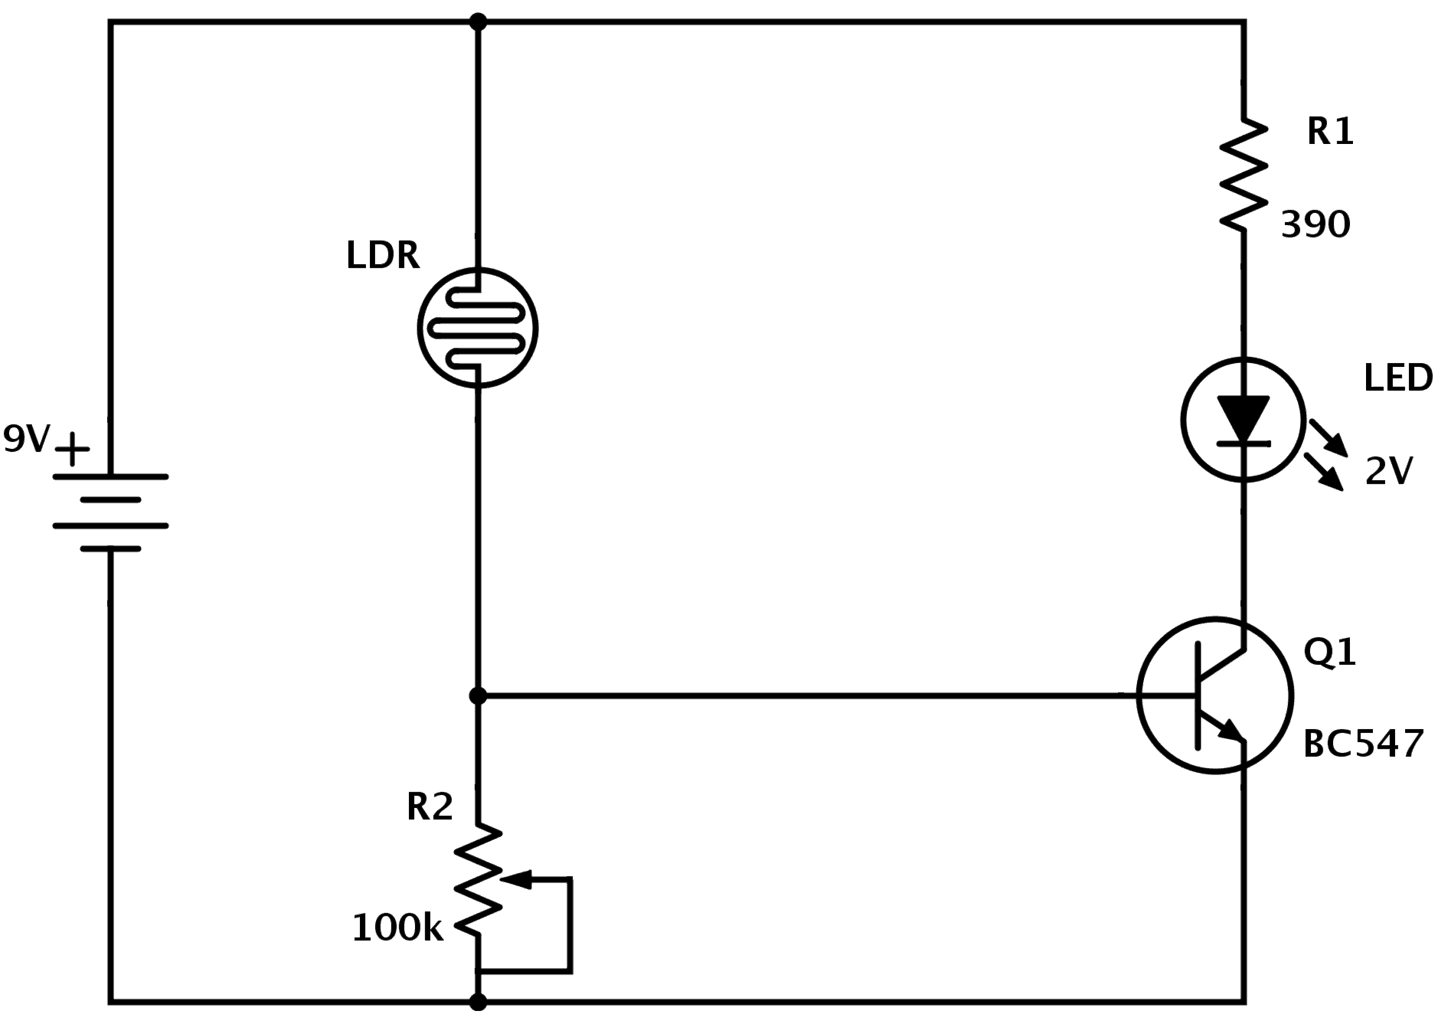 How To Make Circuit Diagram | Circuit Diagram How To Read And Understand Any Schematic